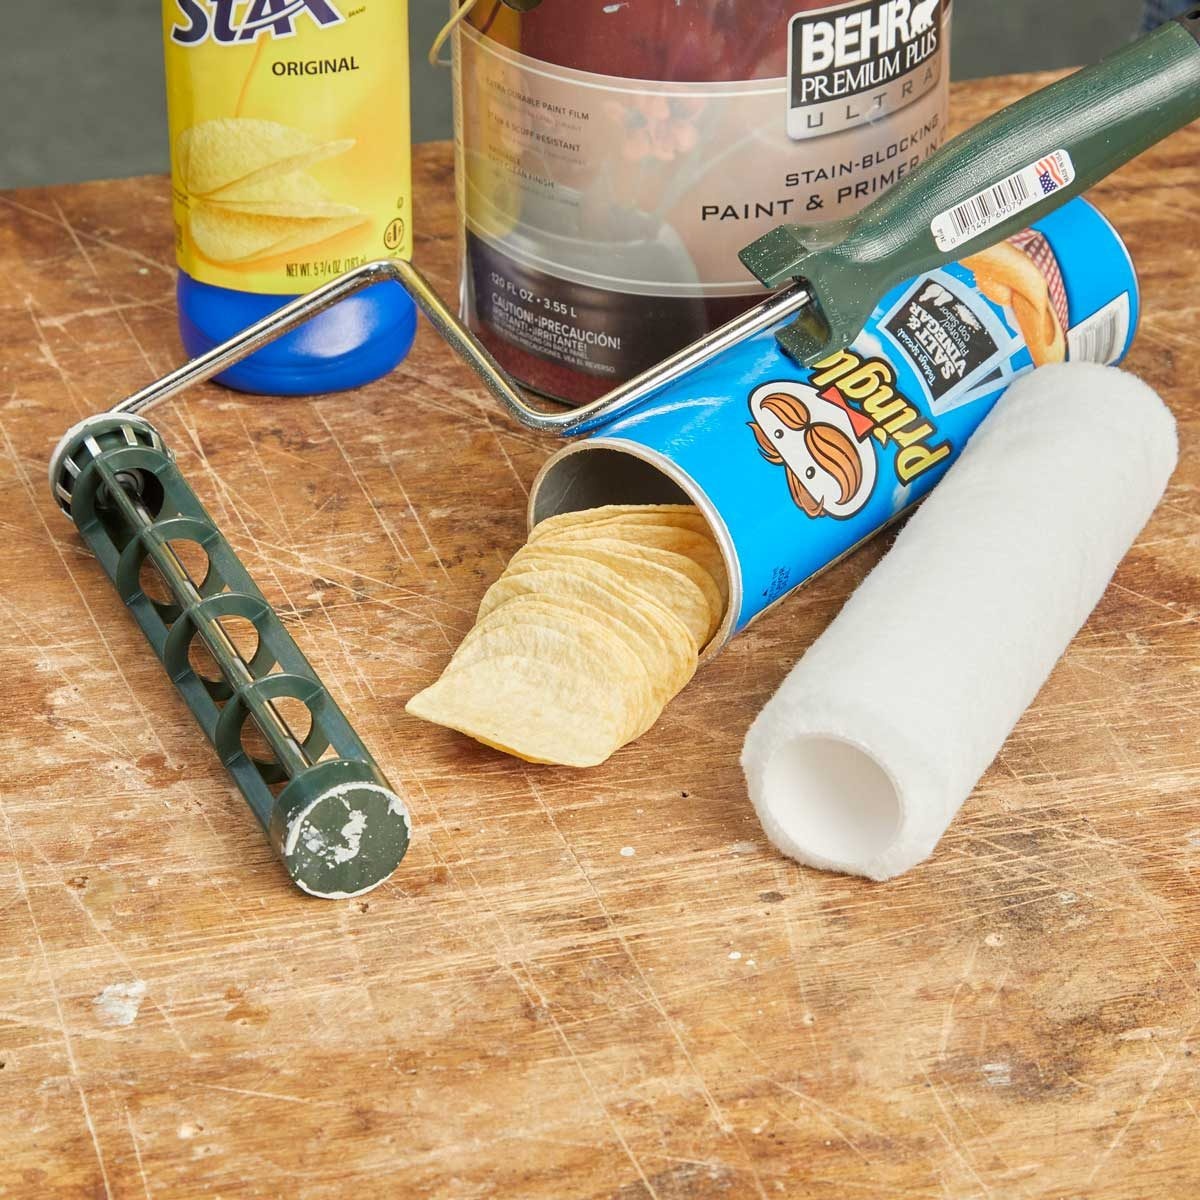 HH handy hints paint roller lays can of chips Pringles